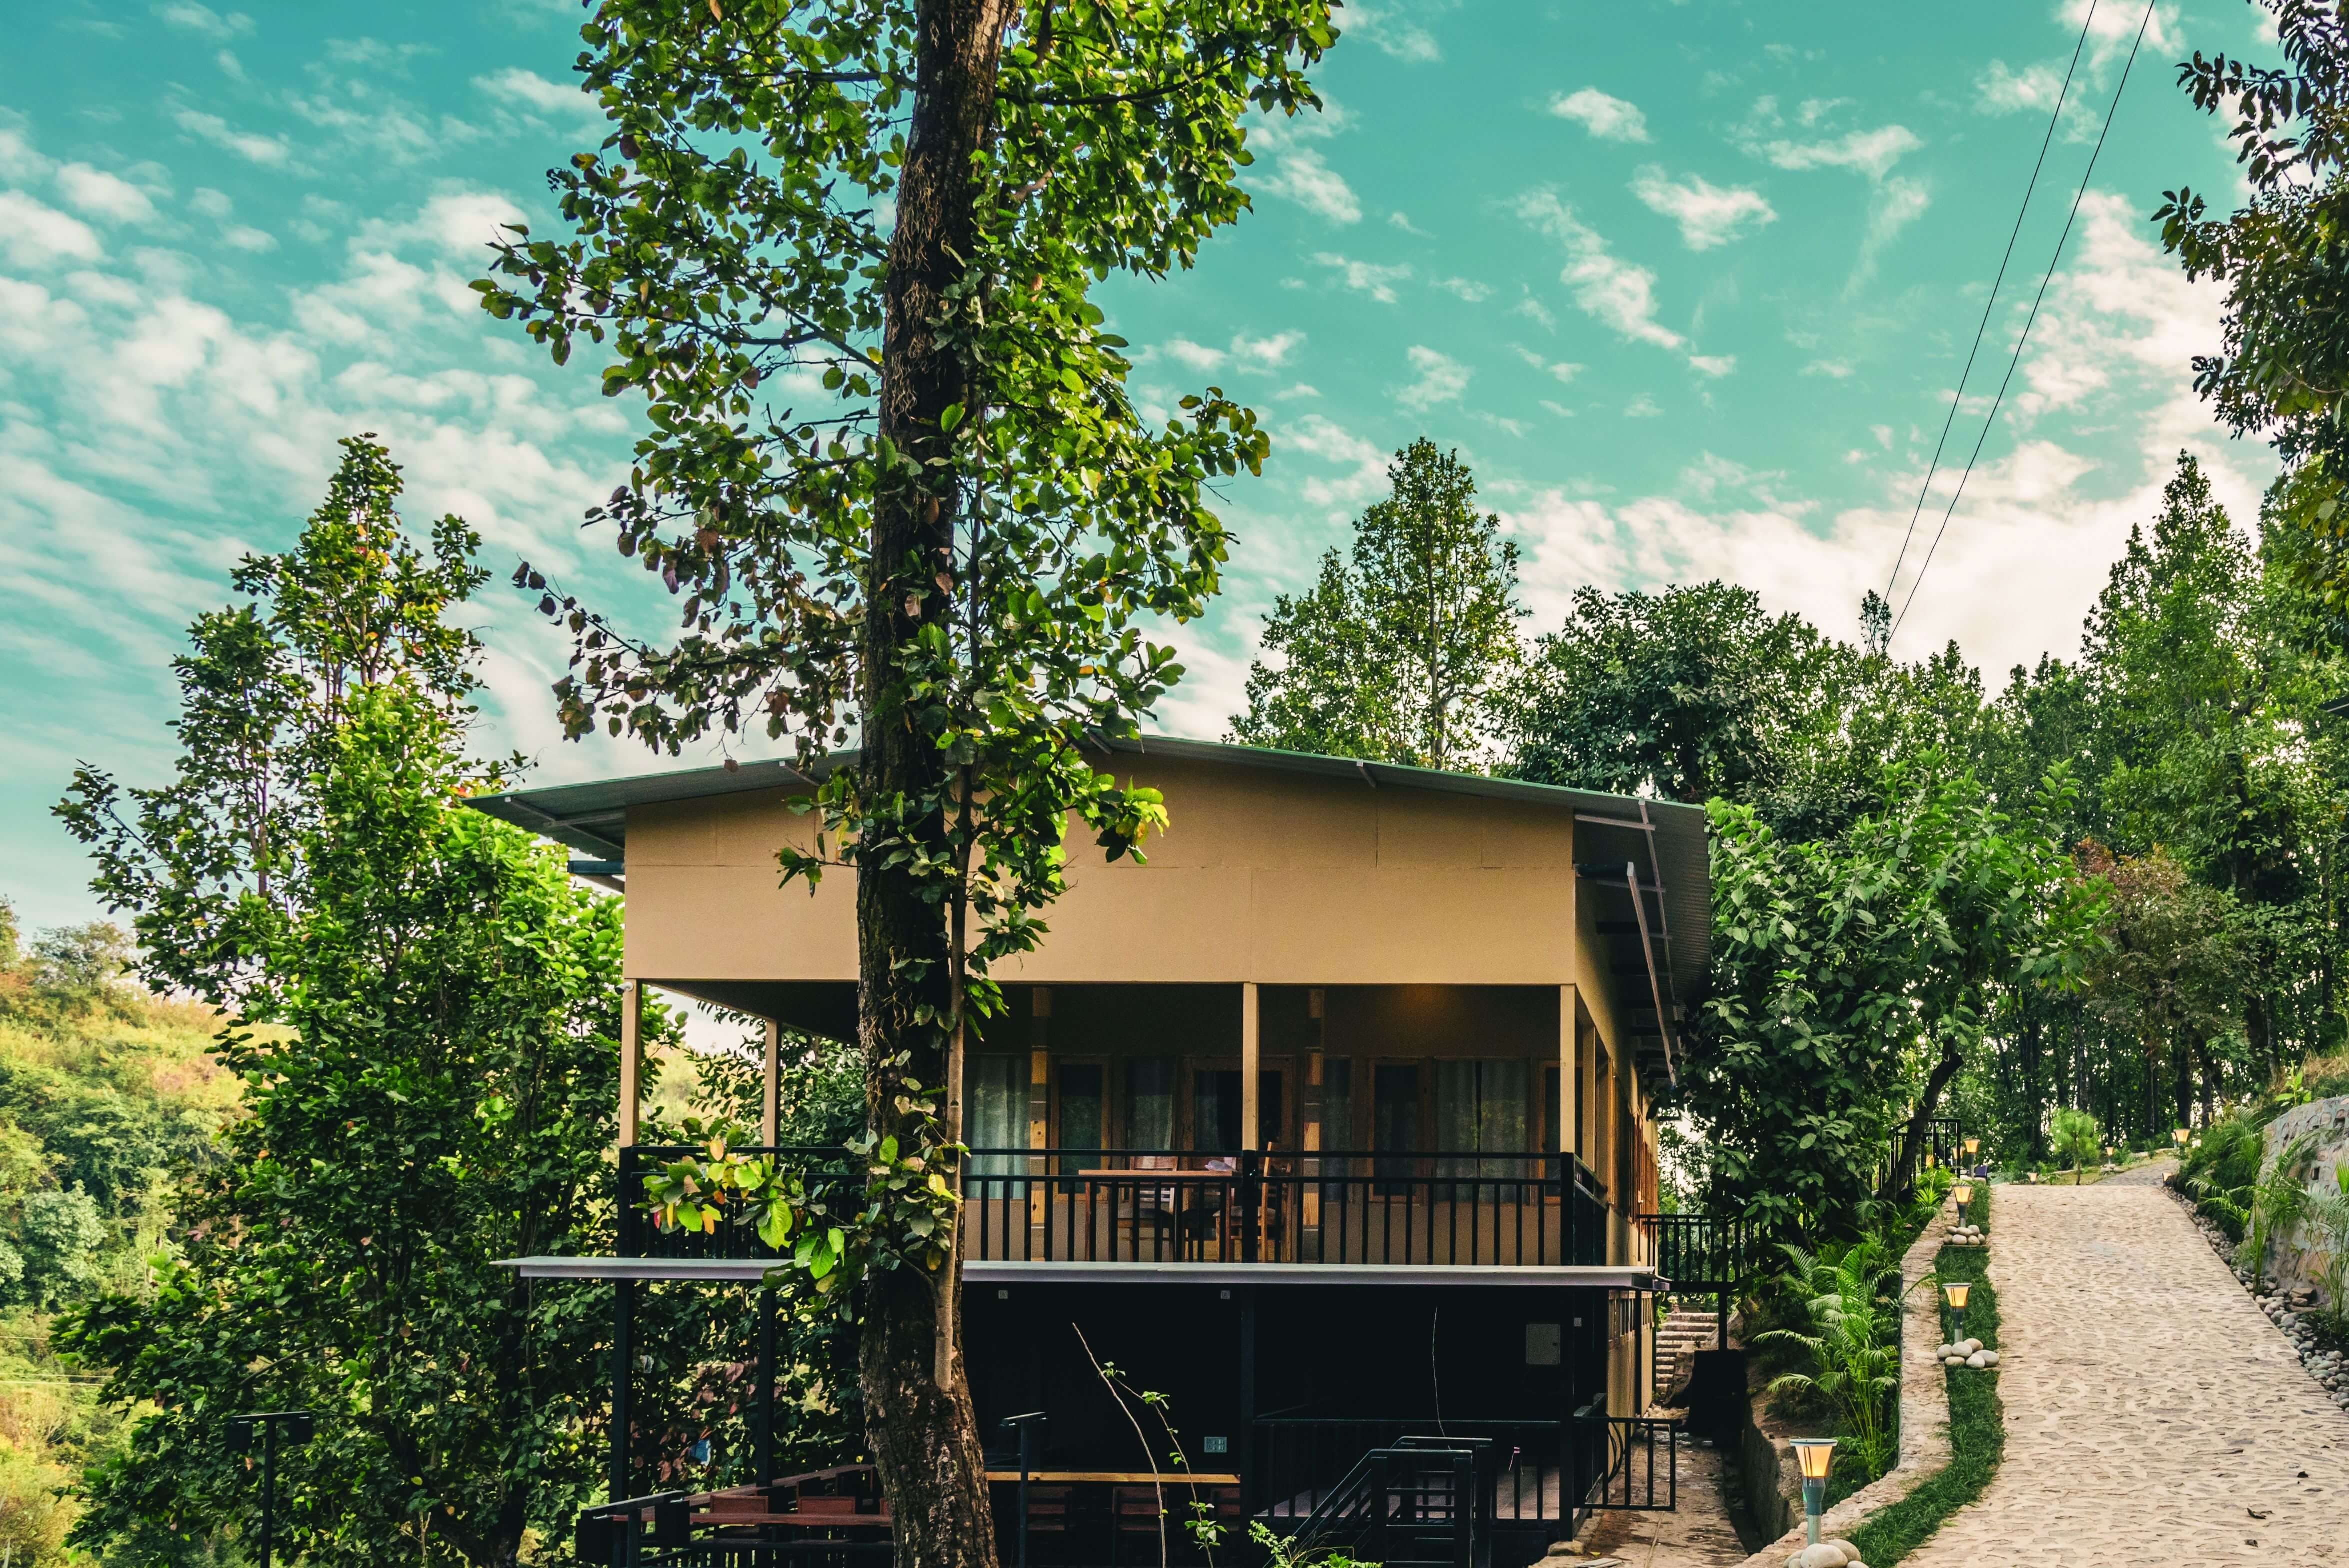 Salwood resort surrounded by Sal trees